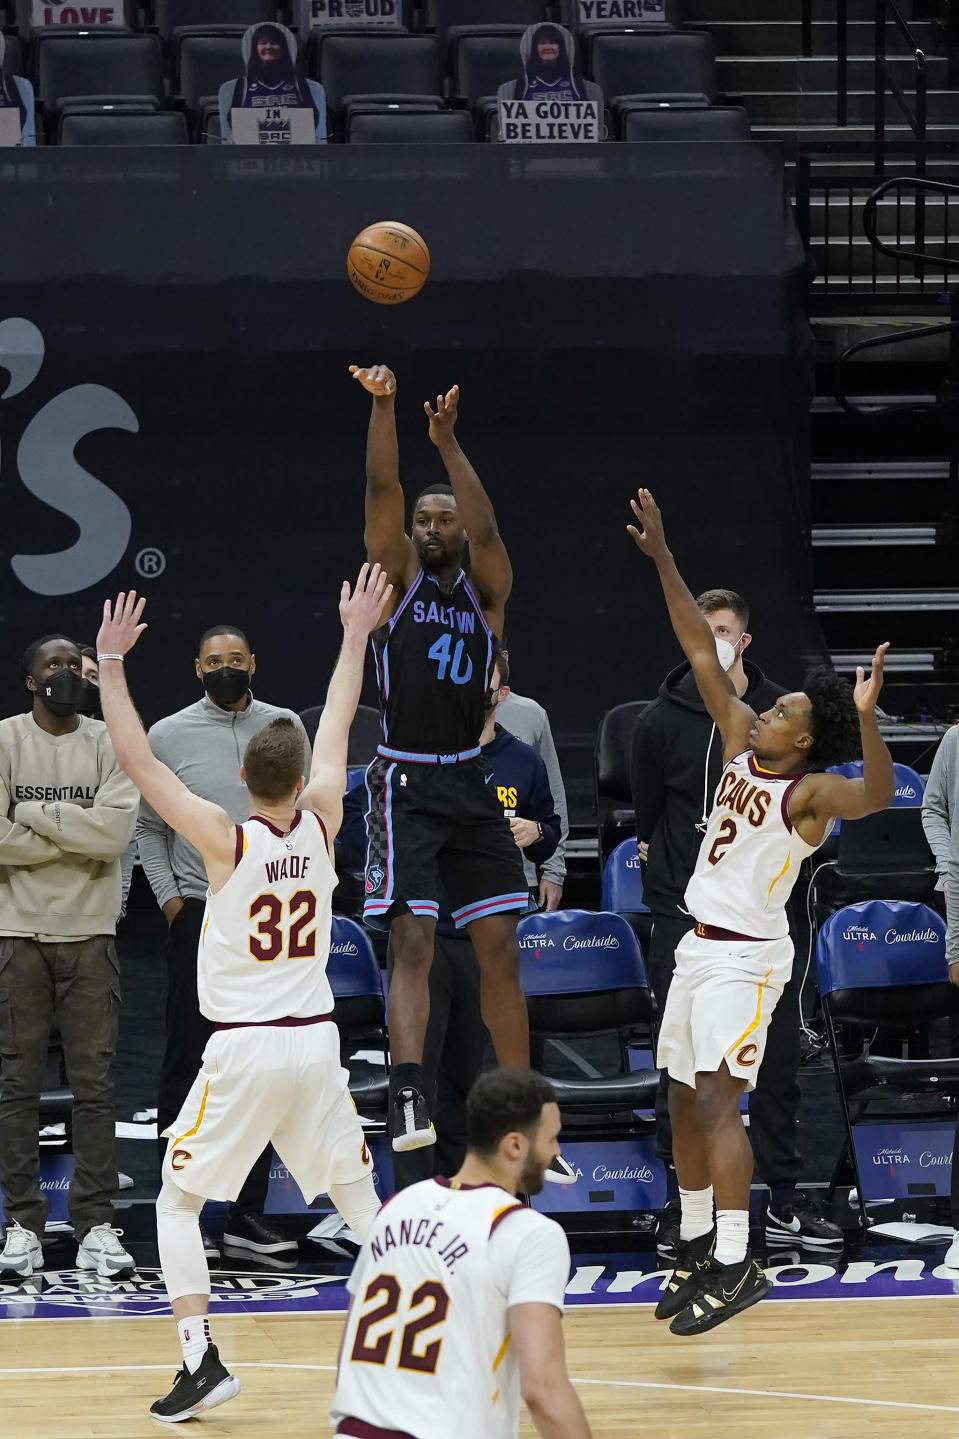 Sacramento Kings forward Harrison Barnes (40) shoots a 3-point basket next to Cleveland Cavaliers forward Dean Wade (32) and guard Collin Sexton (2) during the second half of an NBA basketball game in Sacramento, Calif., Saturday, March 27, 2021. (AP Photo/Jeff Chiu)